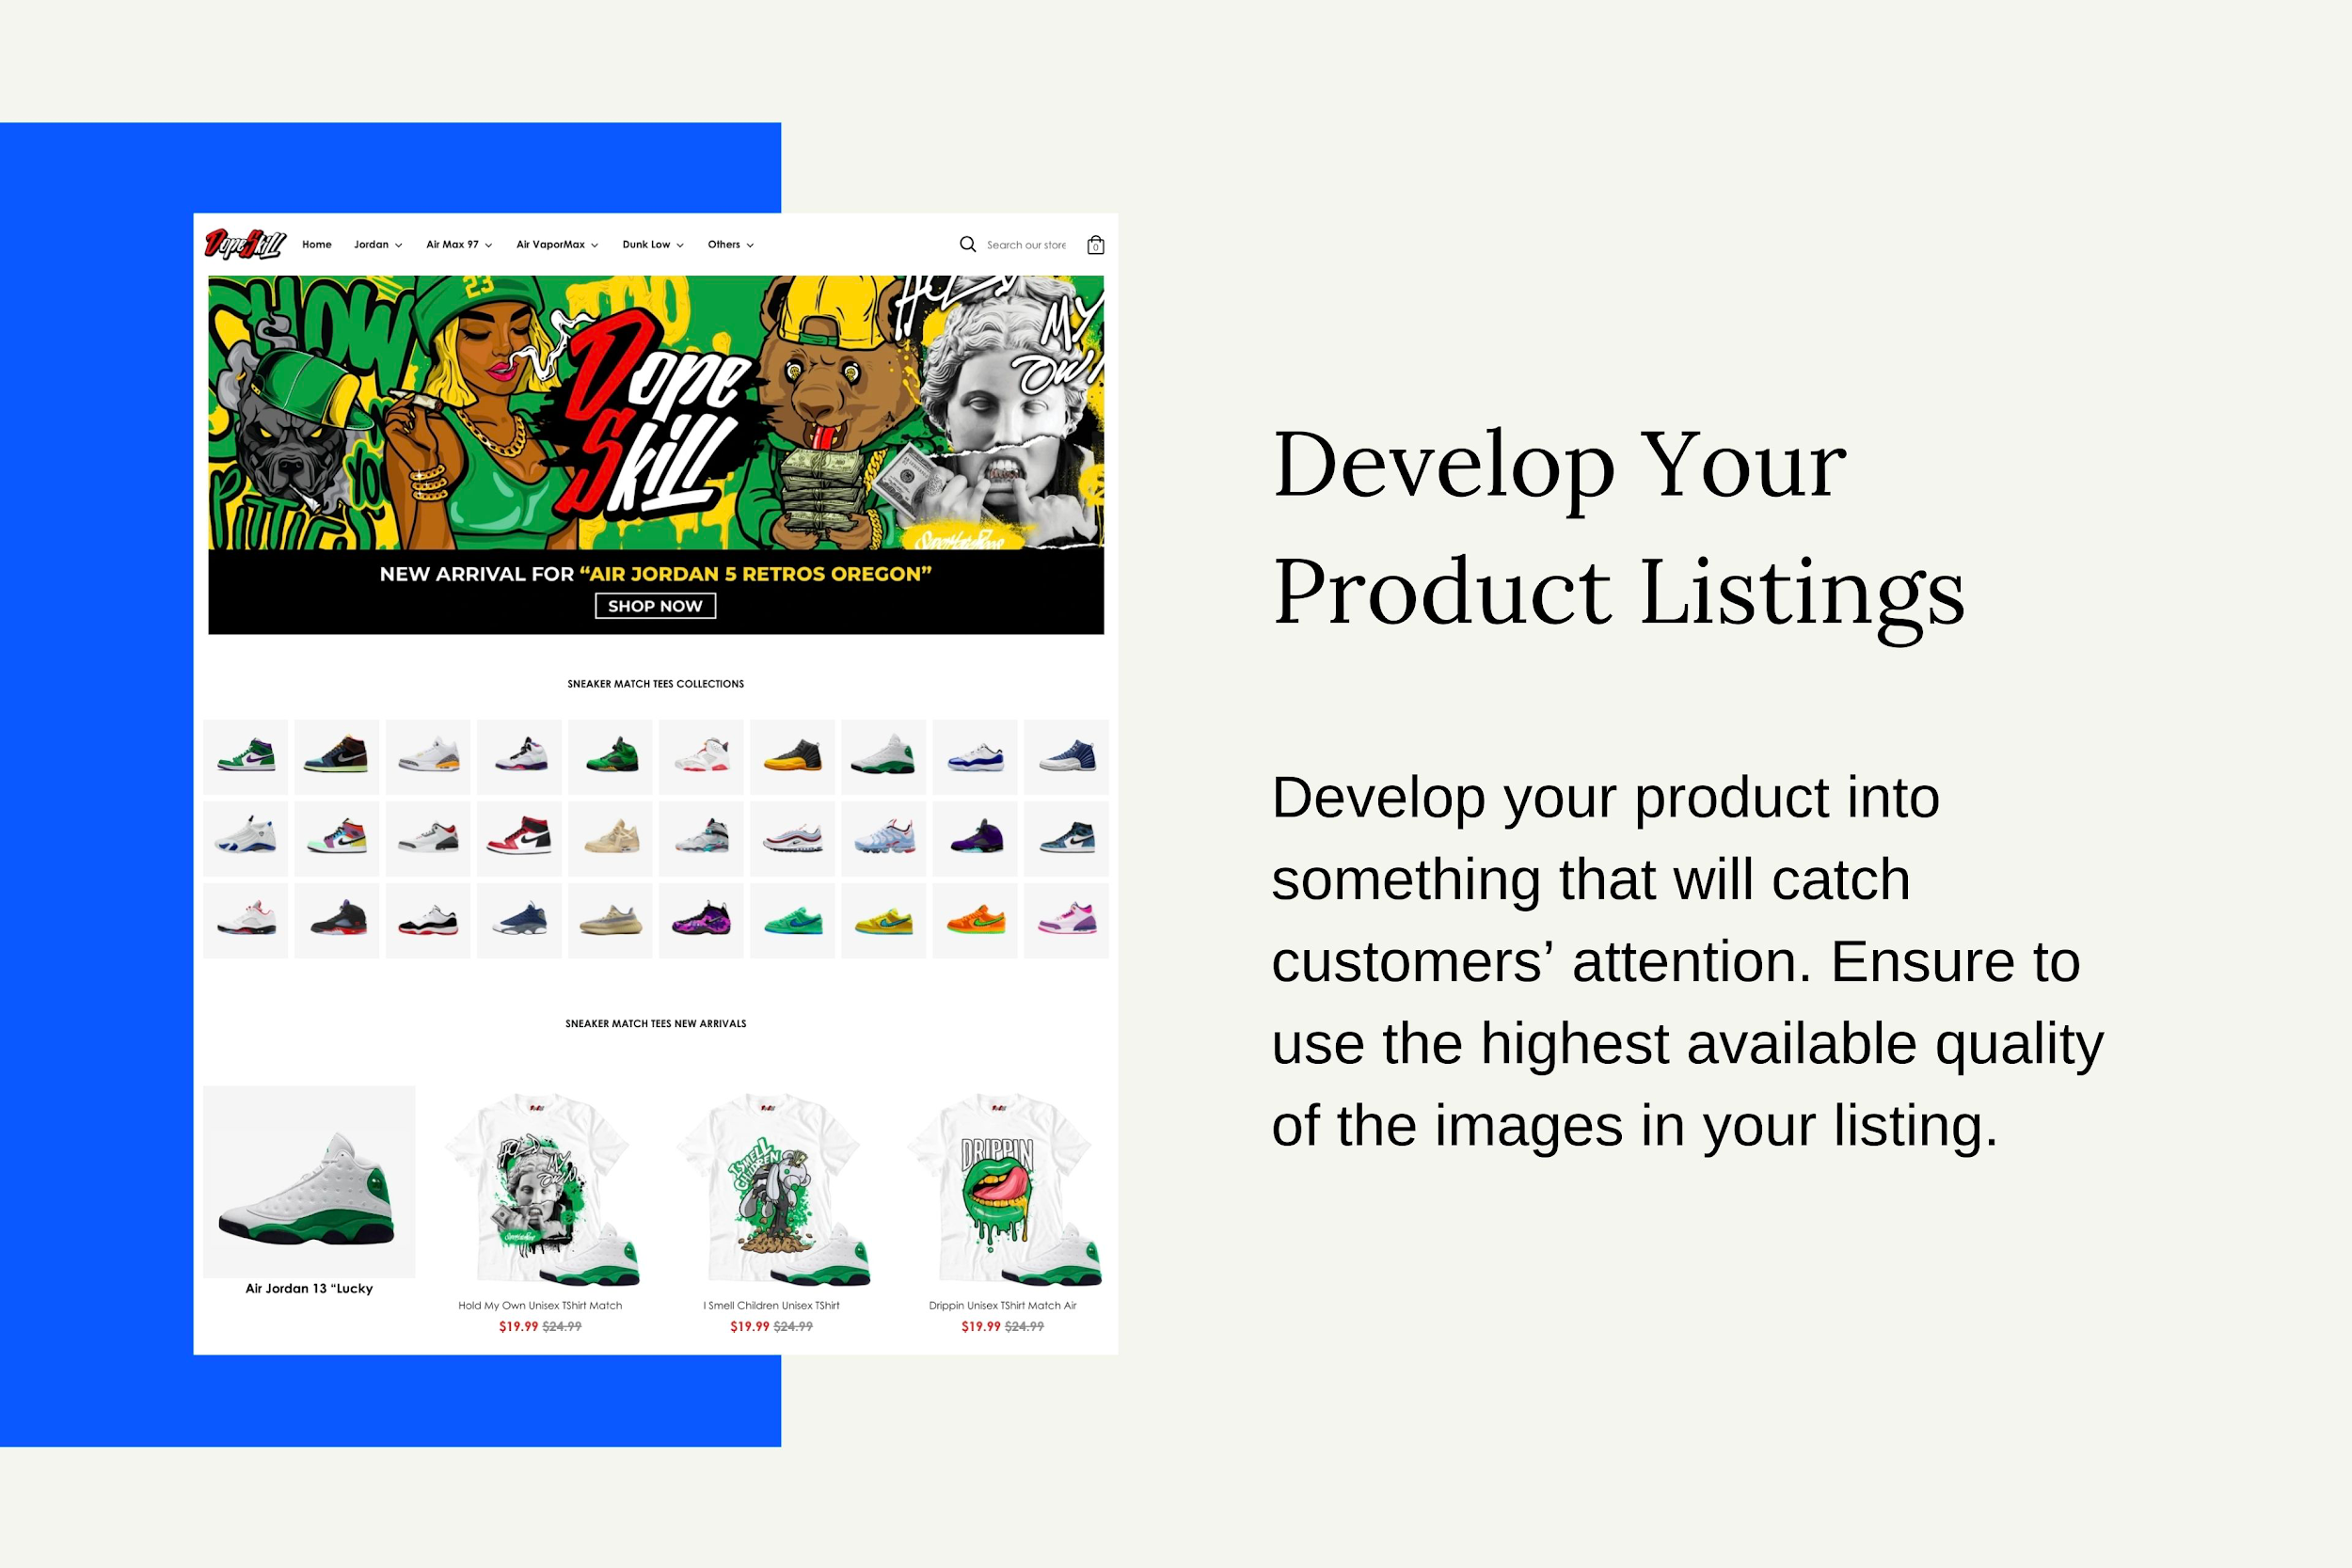 Develop Your Product Listings